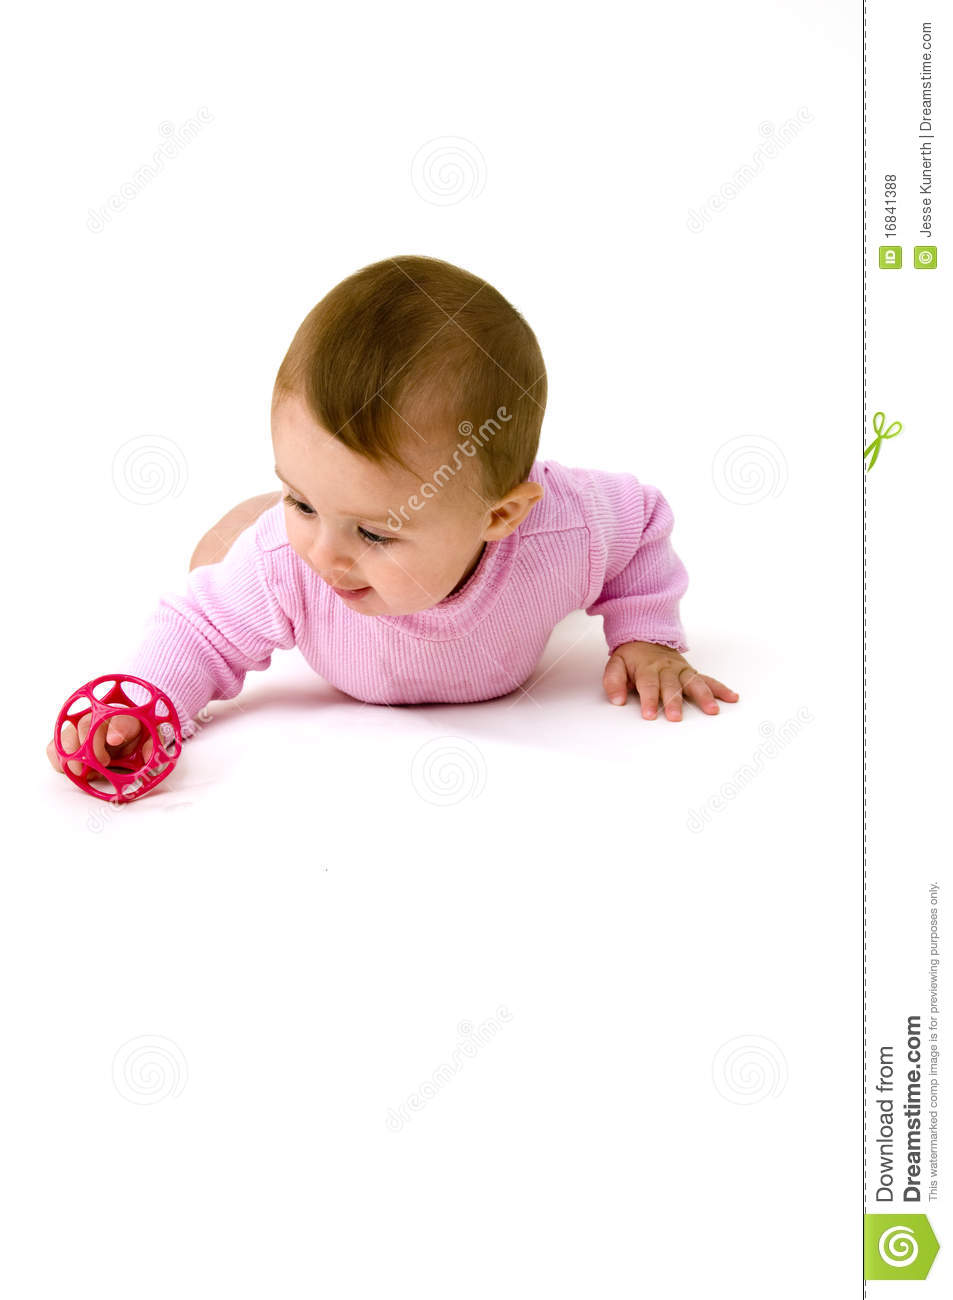 Cute Baby Toys : Cute baby playing with toys royalty free stock photos